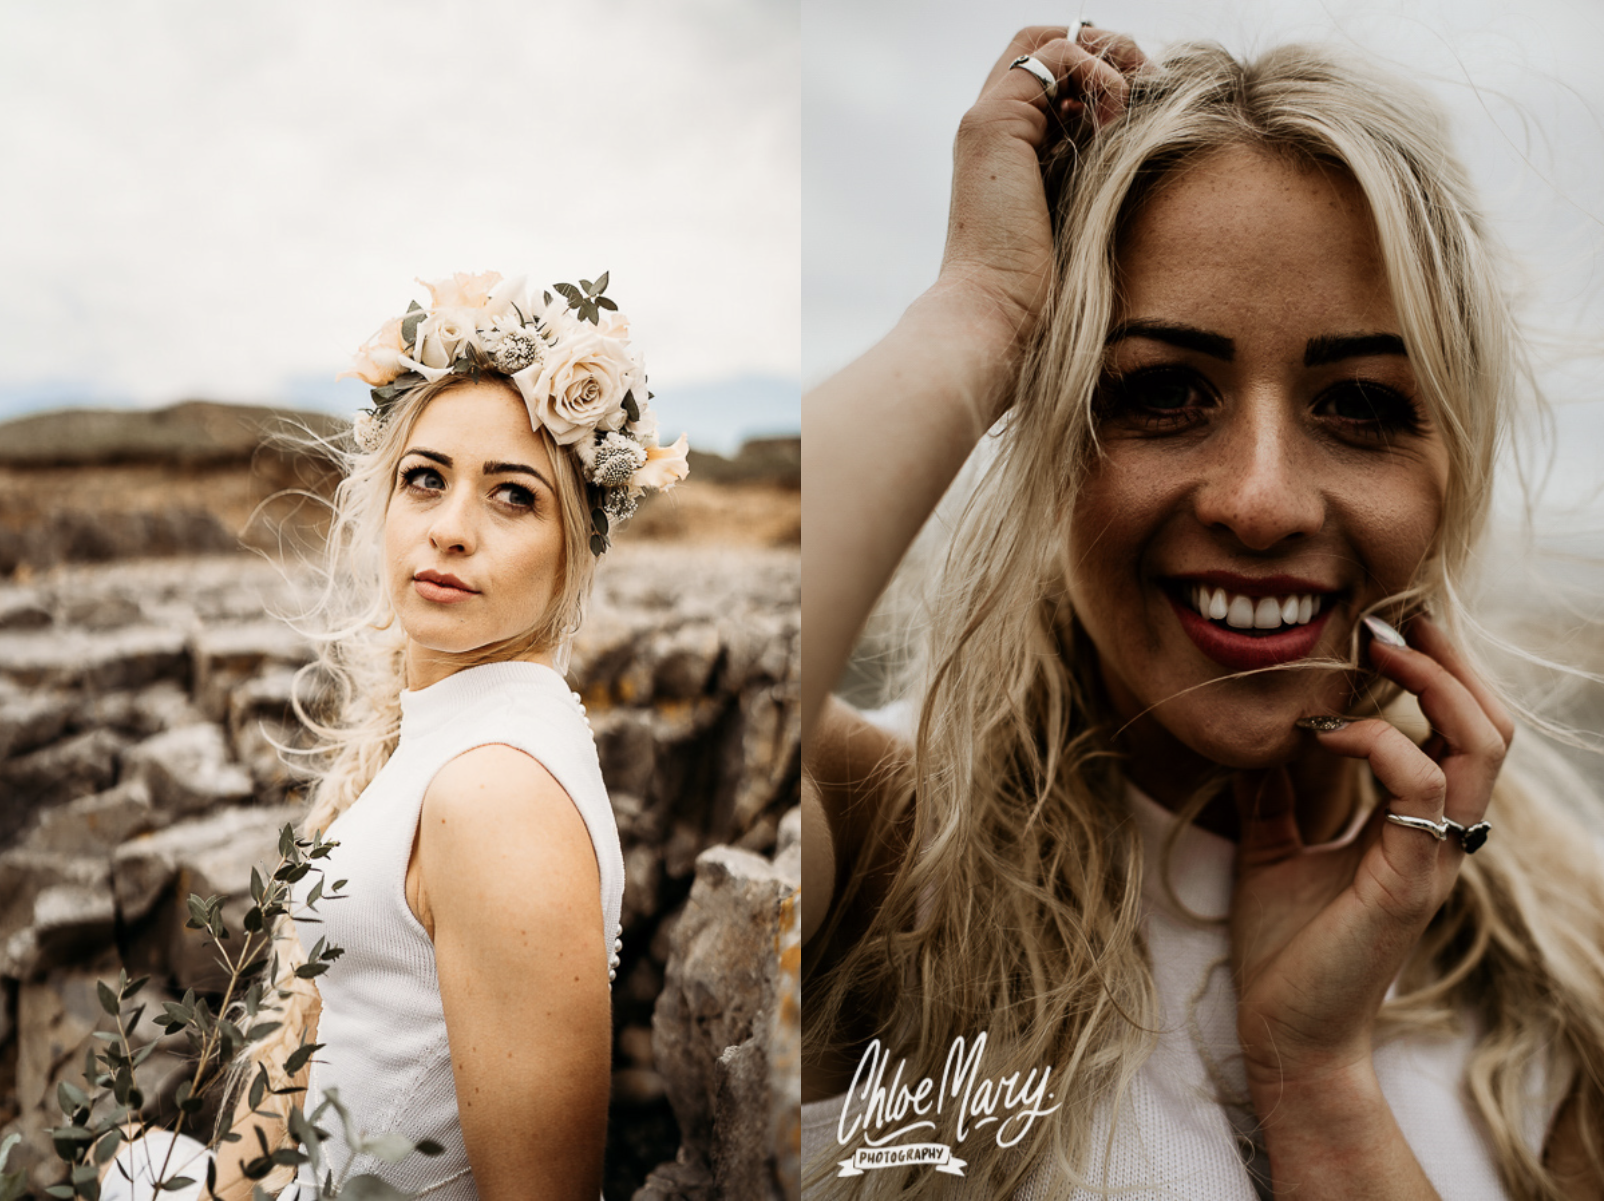 Ogmore Beach Elopement by Leesha Williams Photography and Chloe Mary Photography